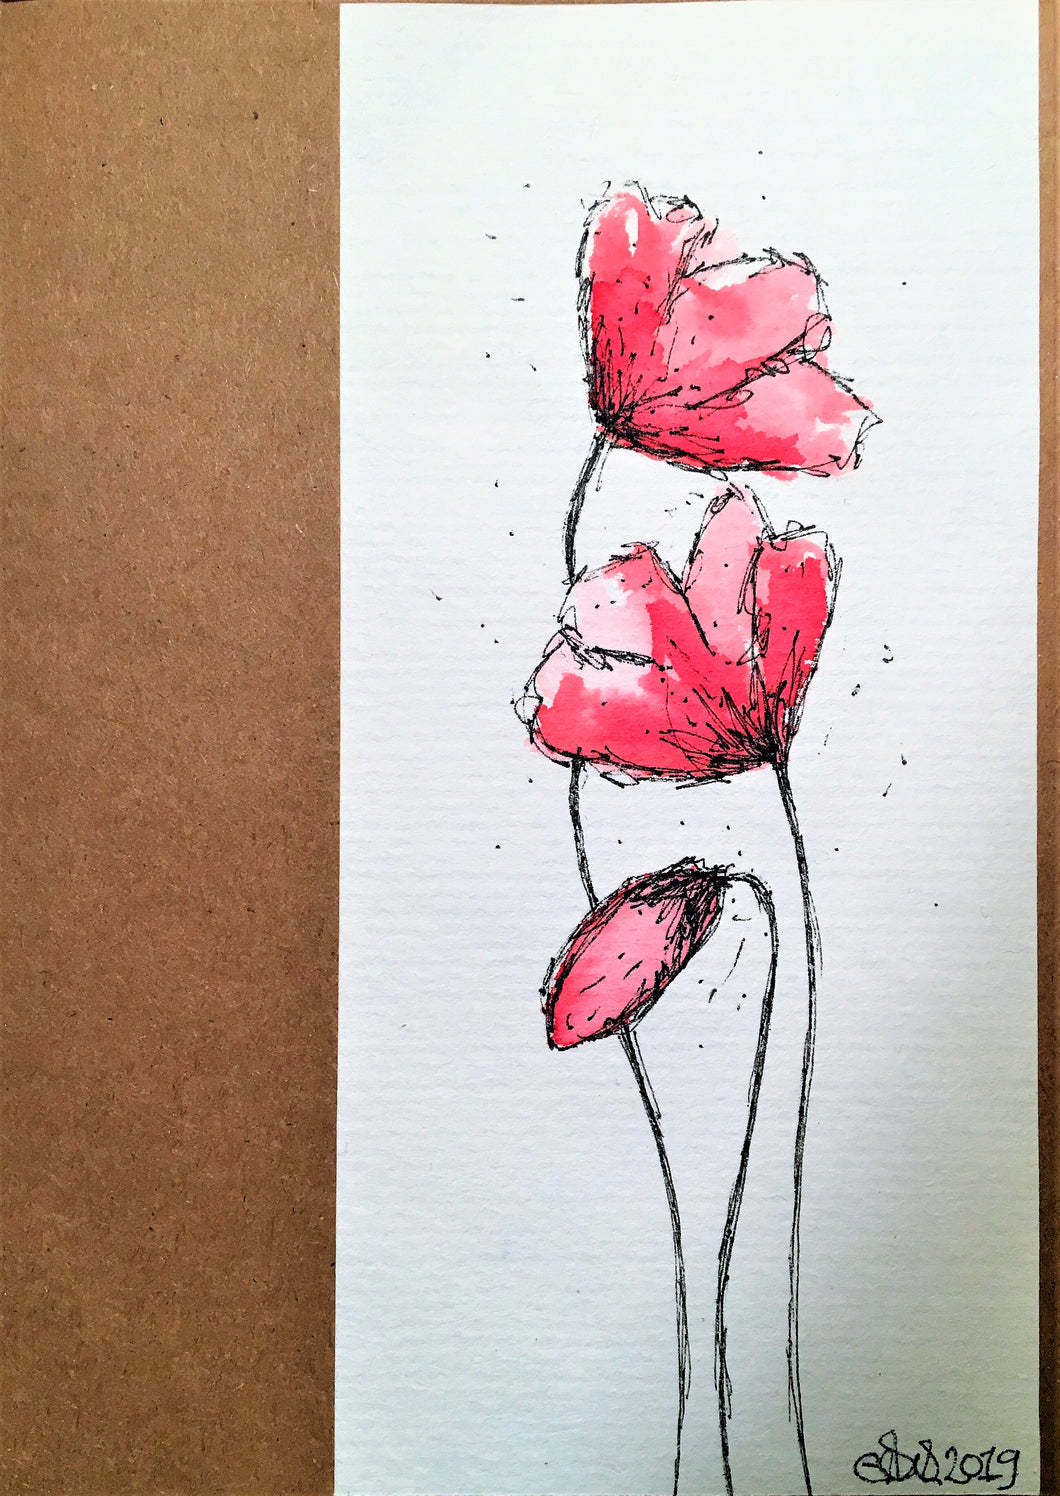 Handpainted Watercolour Greeting Card - Three Abstract Red/Pink Poppies Design - eDgE dEsiGn London